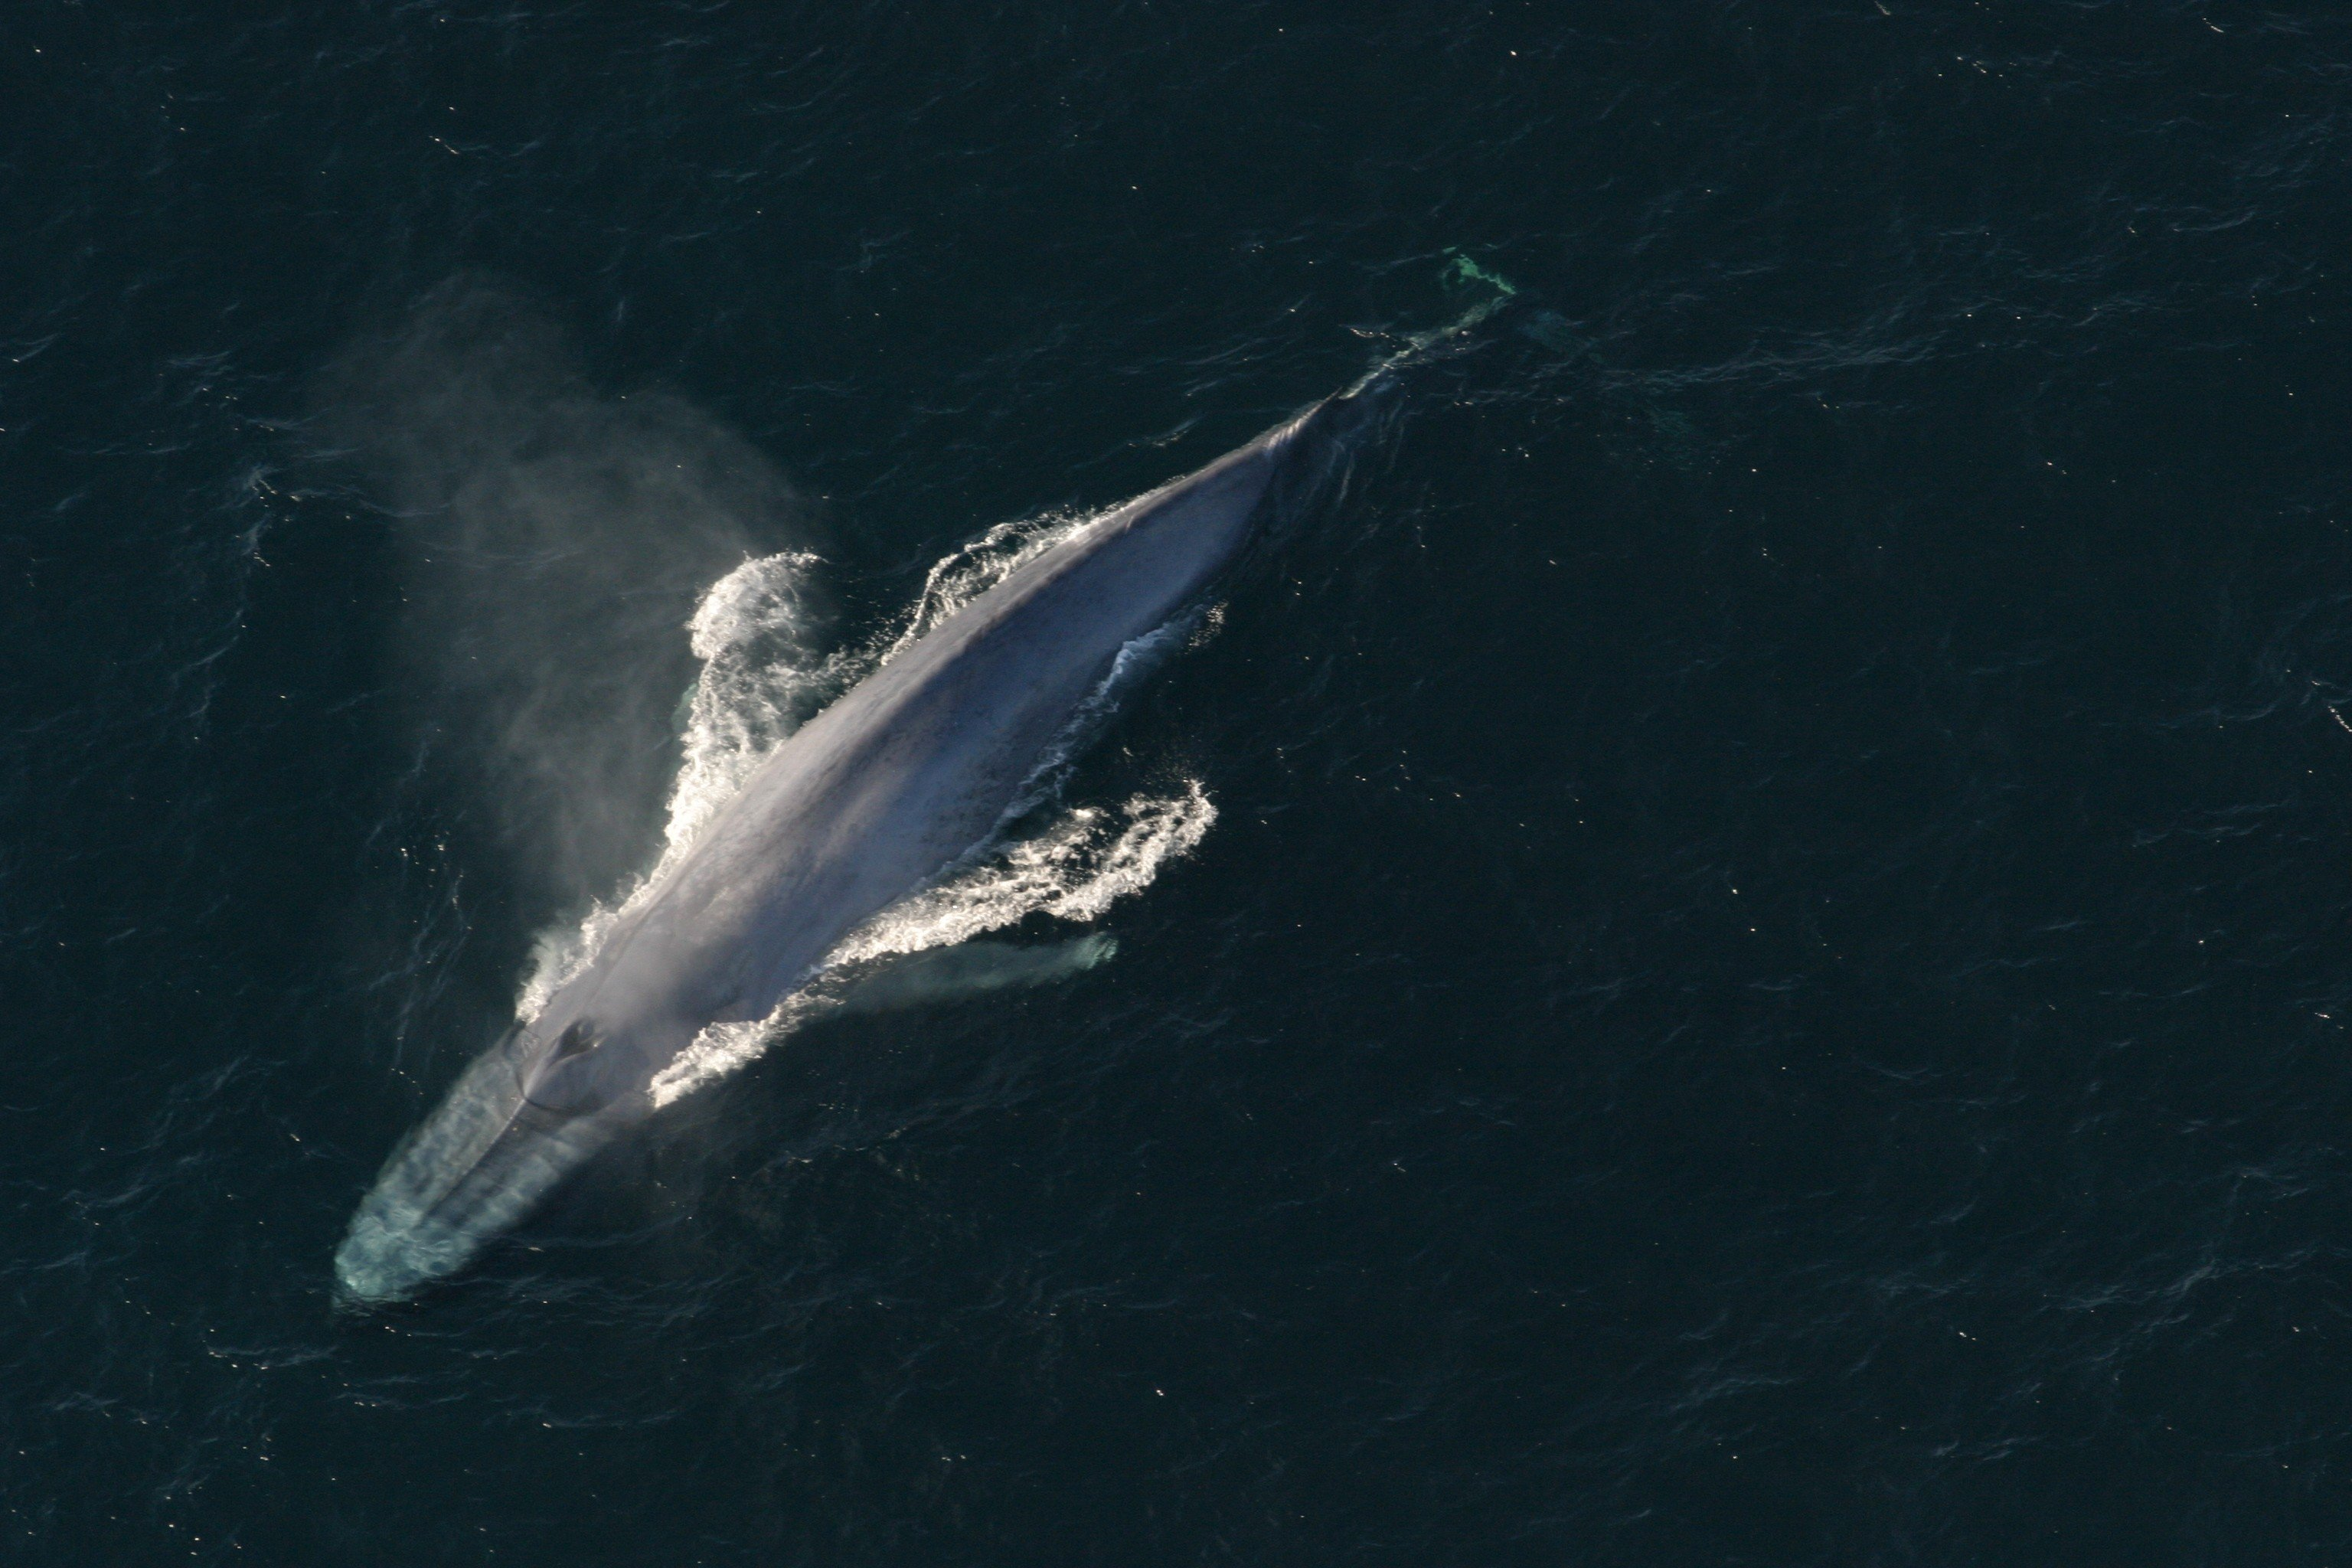 What's big, lives underwater, and fights climate change with its body and booty? Whale give you one guess.